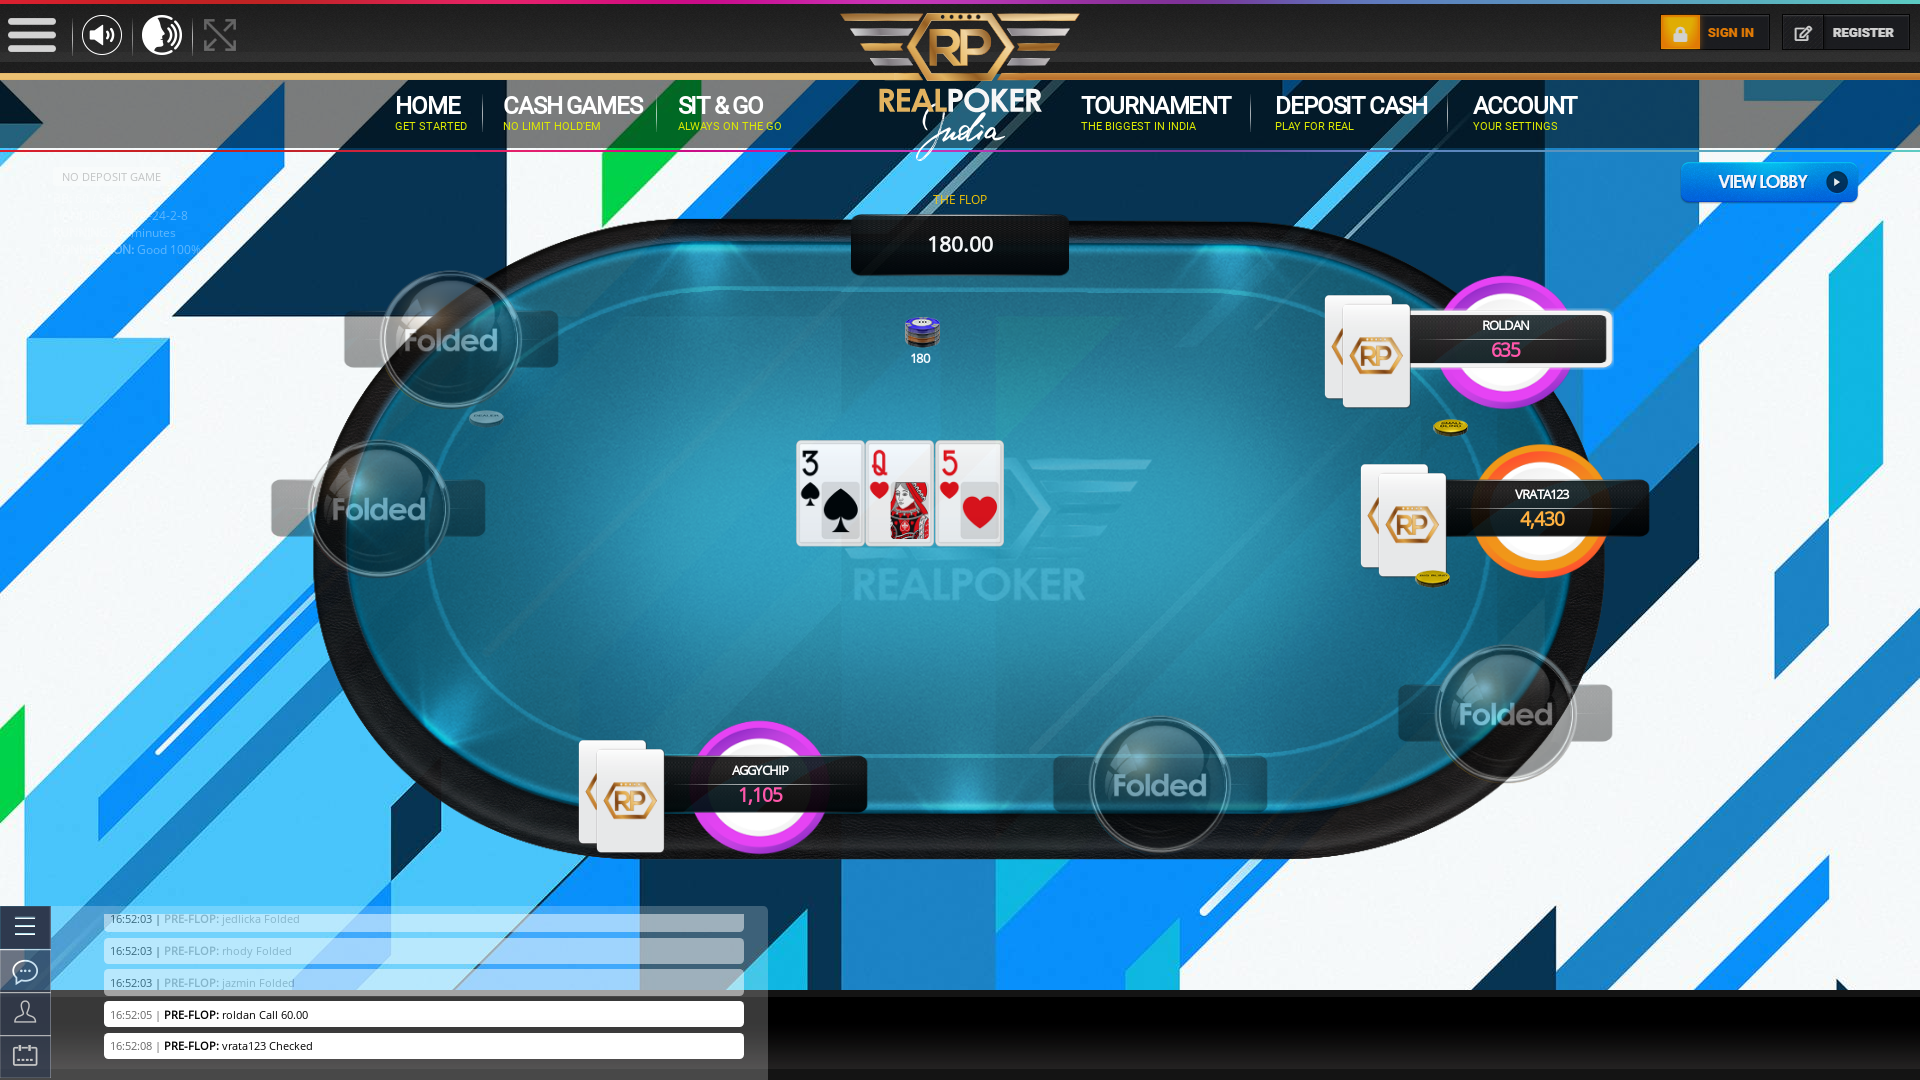 10 player texas holdem table at real poker with the table id 261092